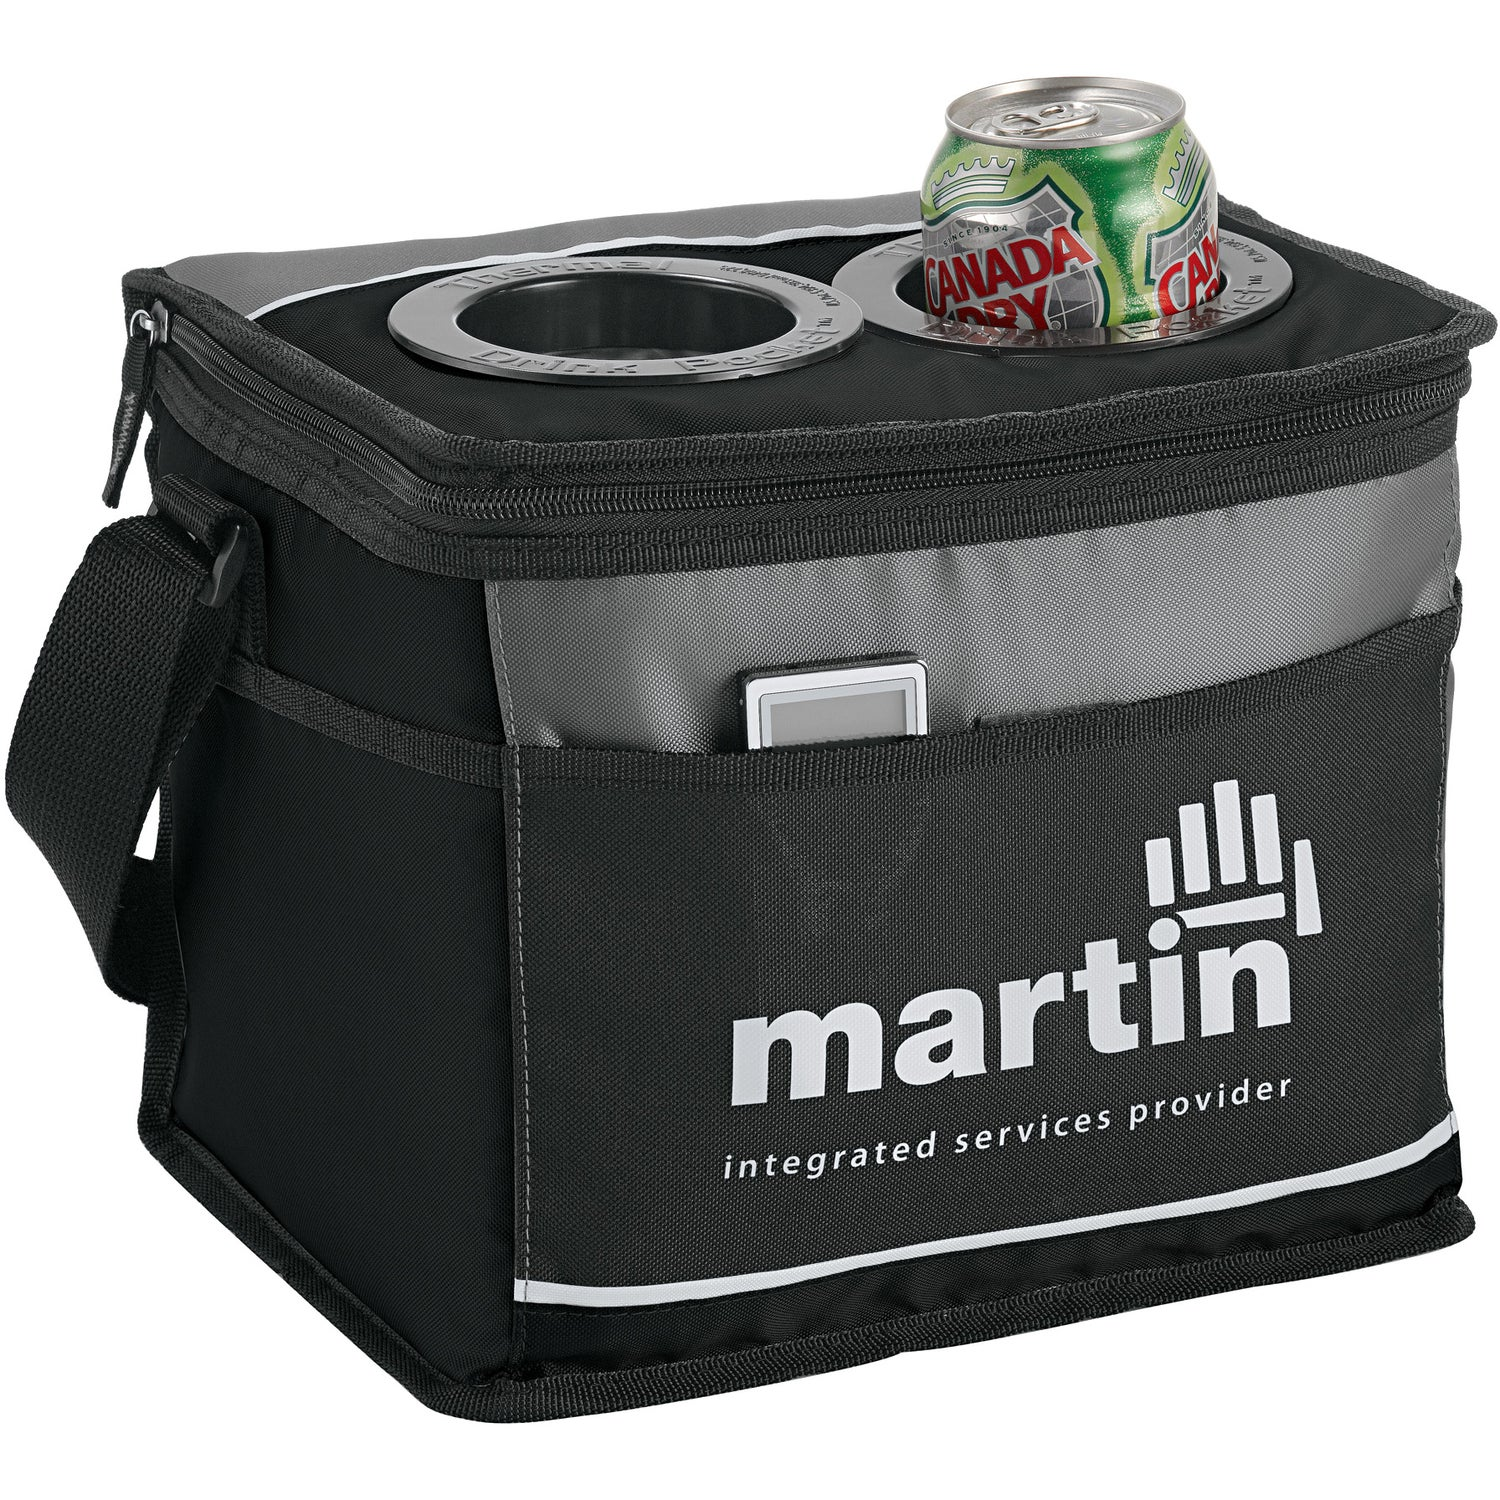 California Innovations 12-Can Cooler